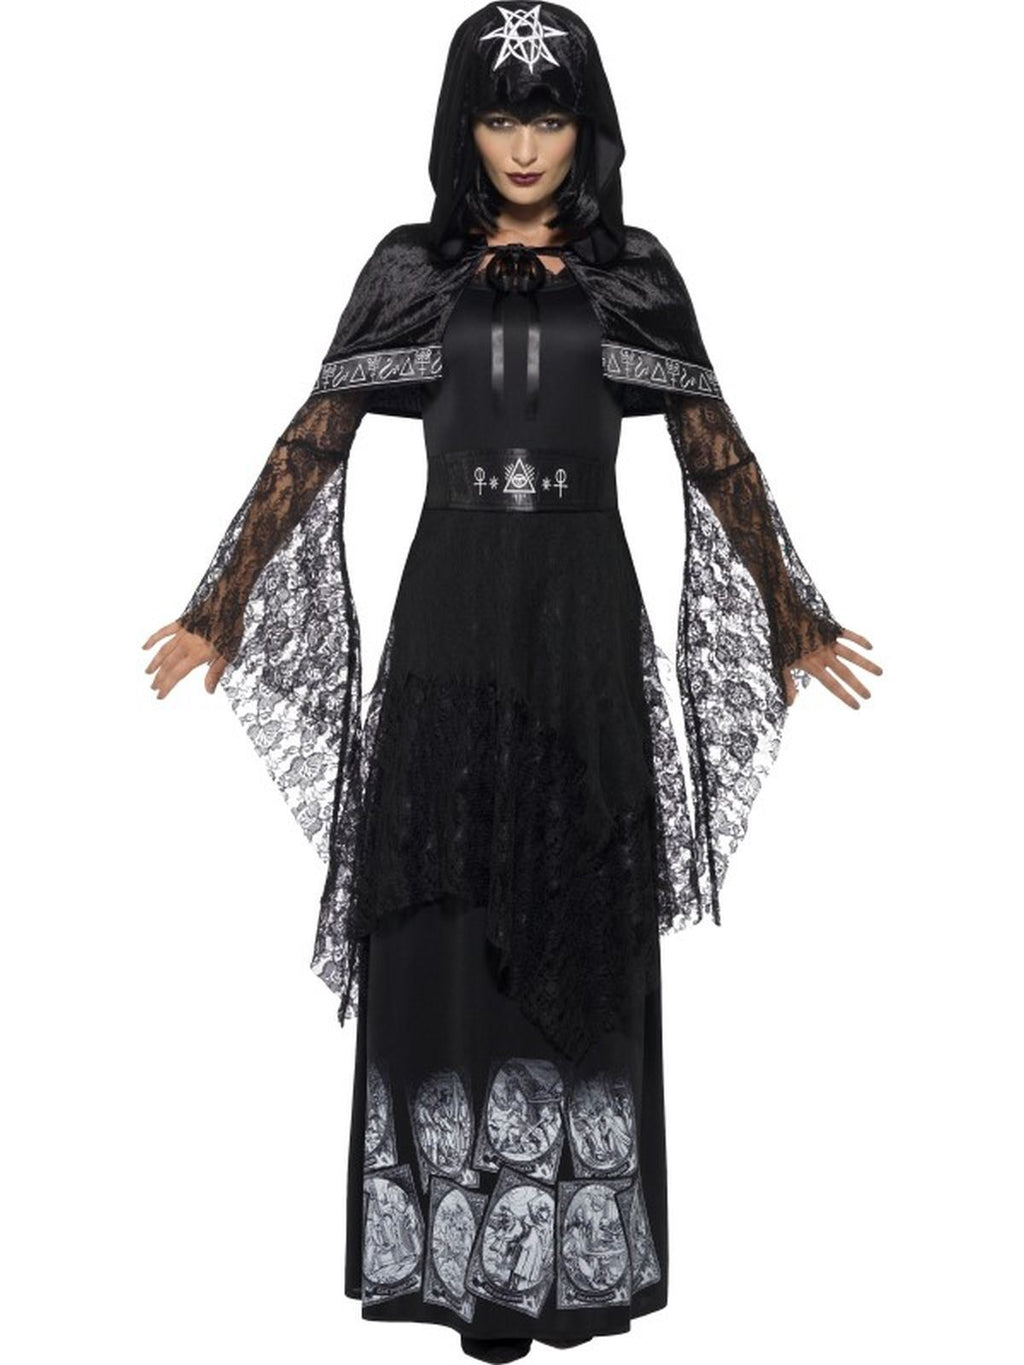 Women's Black Magic Mistress Costume